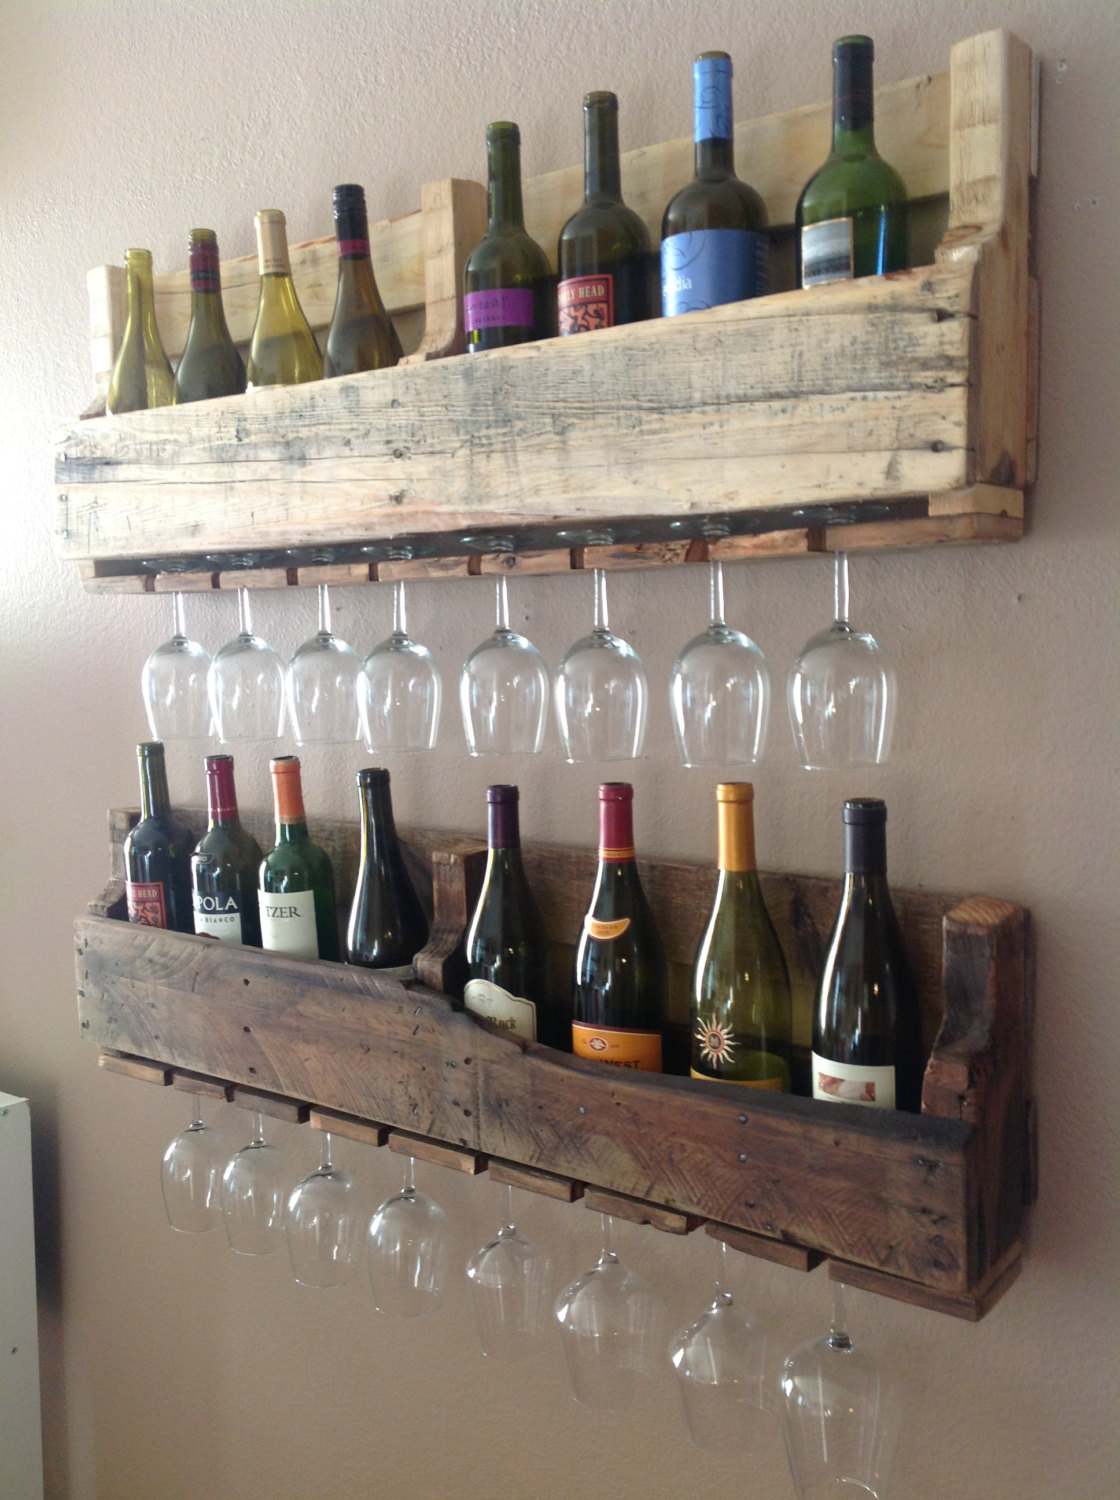 Wine Rack Built Into Wall Spice Up Your Basement Bar 17 Ideas For A Beautiful Bar Space